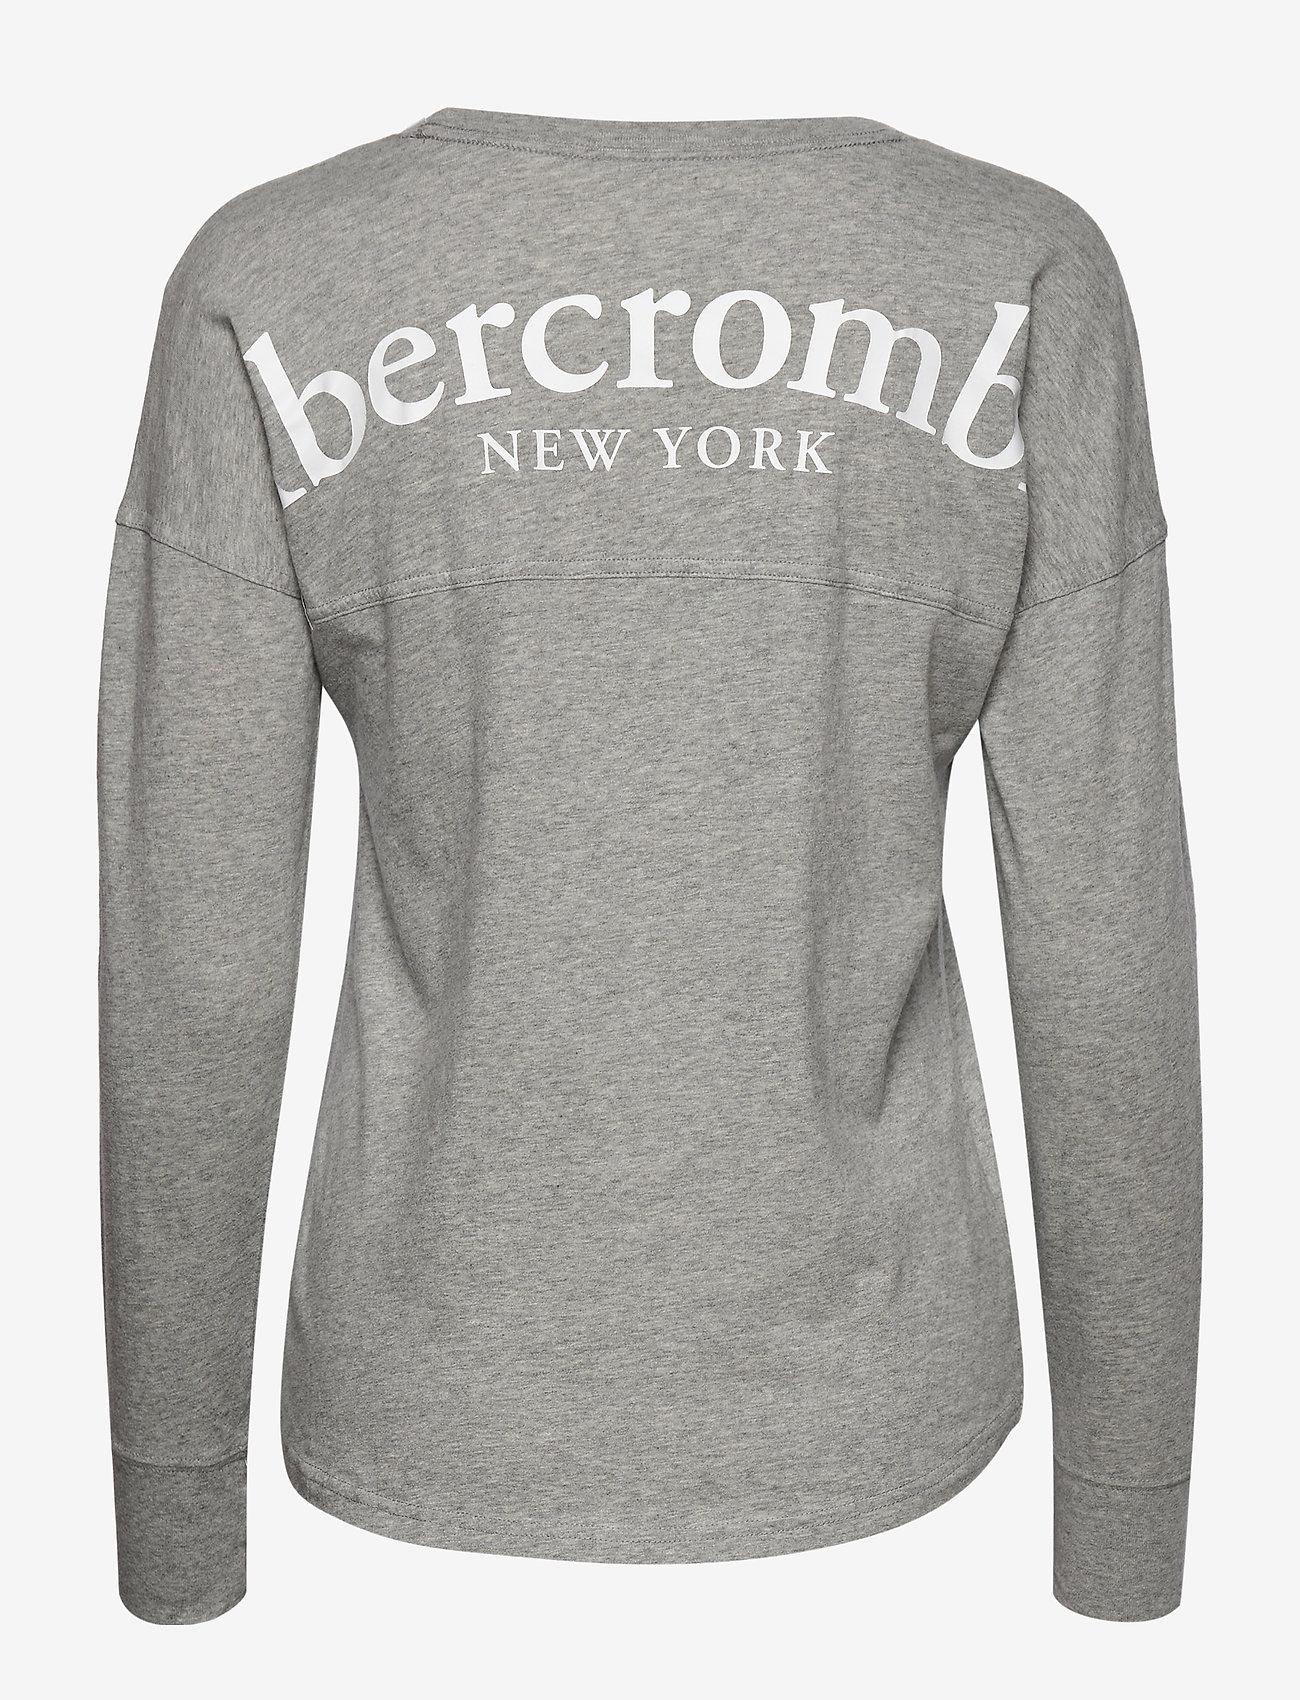 Print Logo Tee (Light Grey Sd/texture) (291.85 kr) - Abercrombie & Fitch